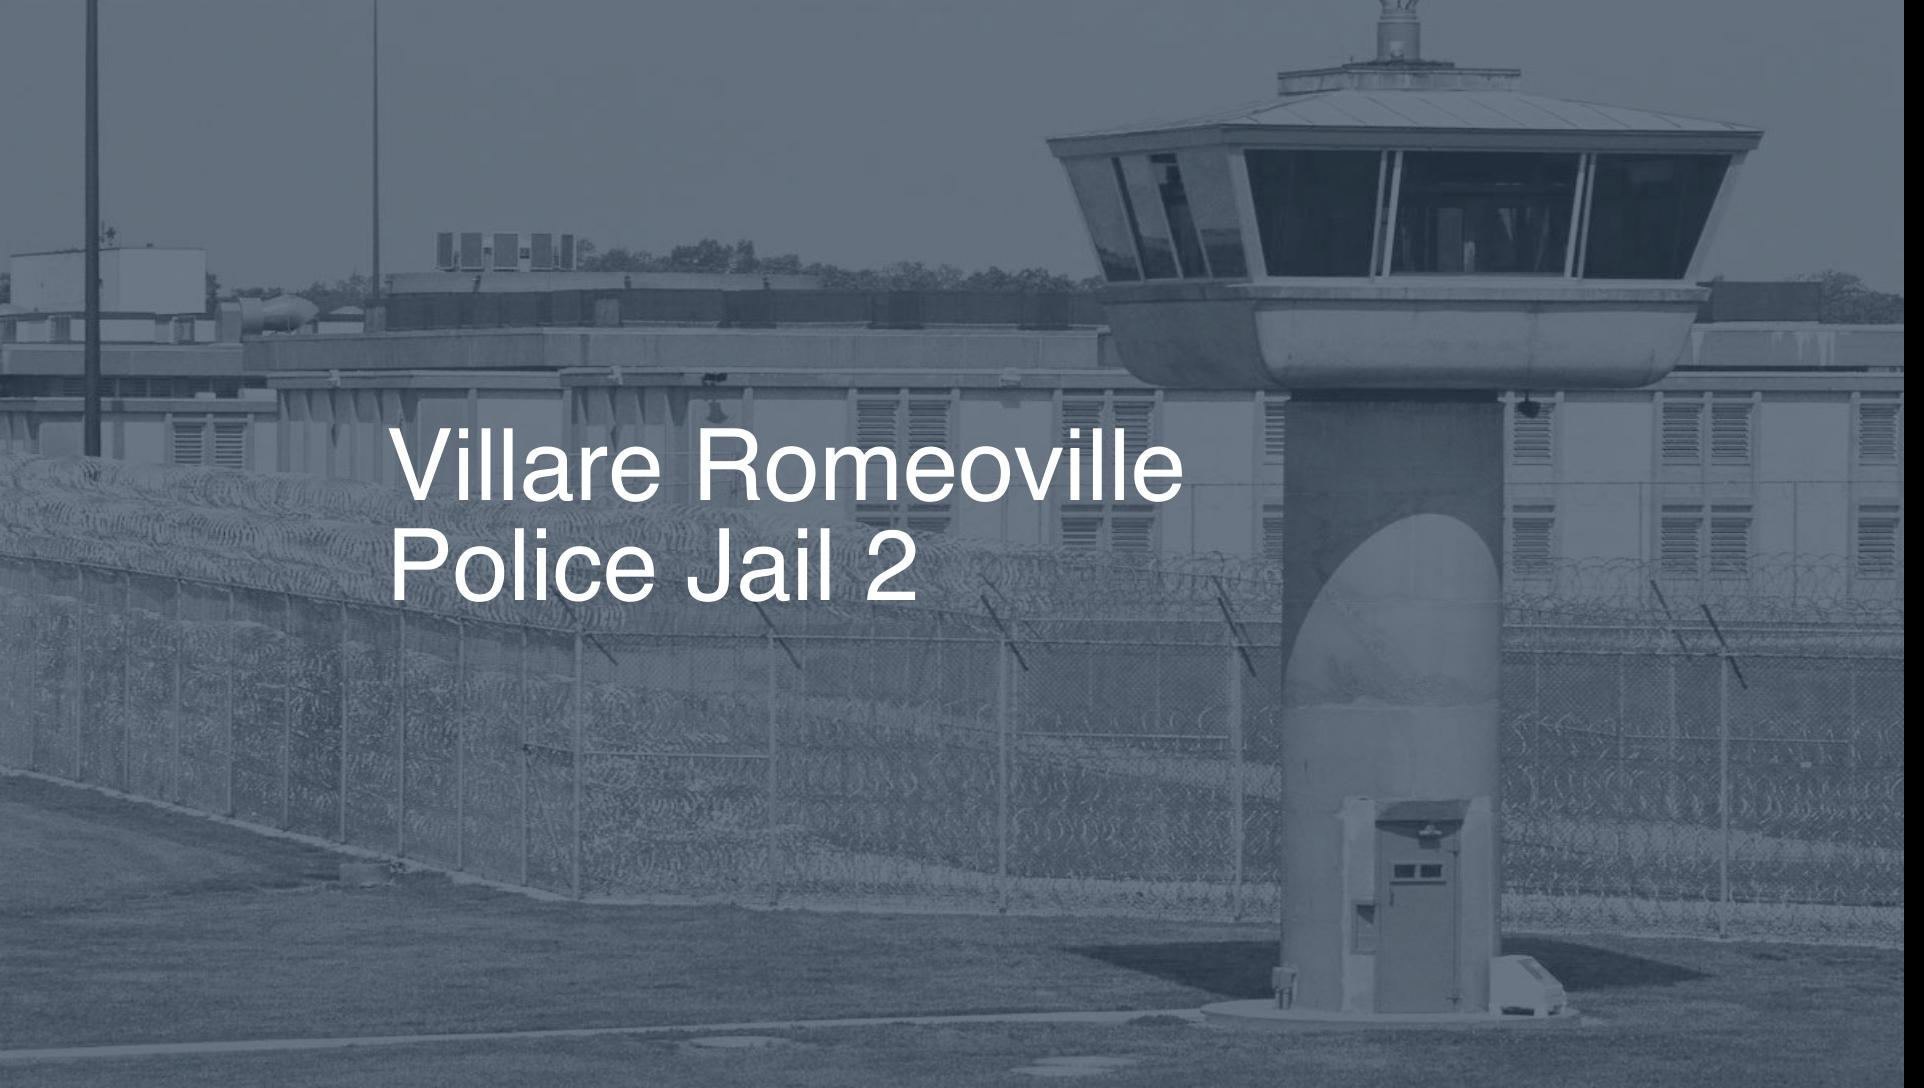 Villare Romeoville Police Jail correctional facility picture